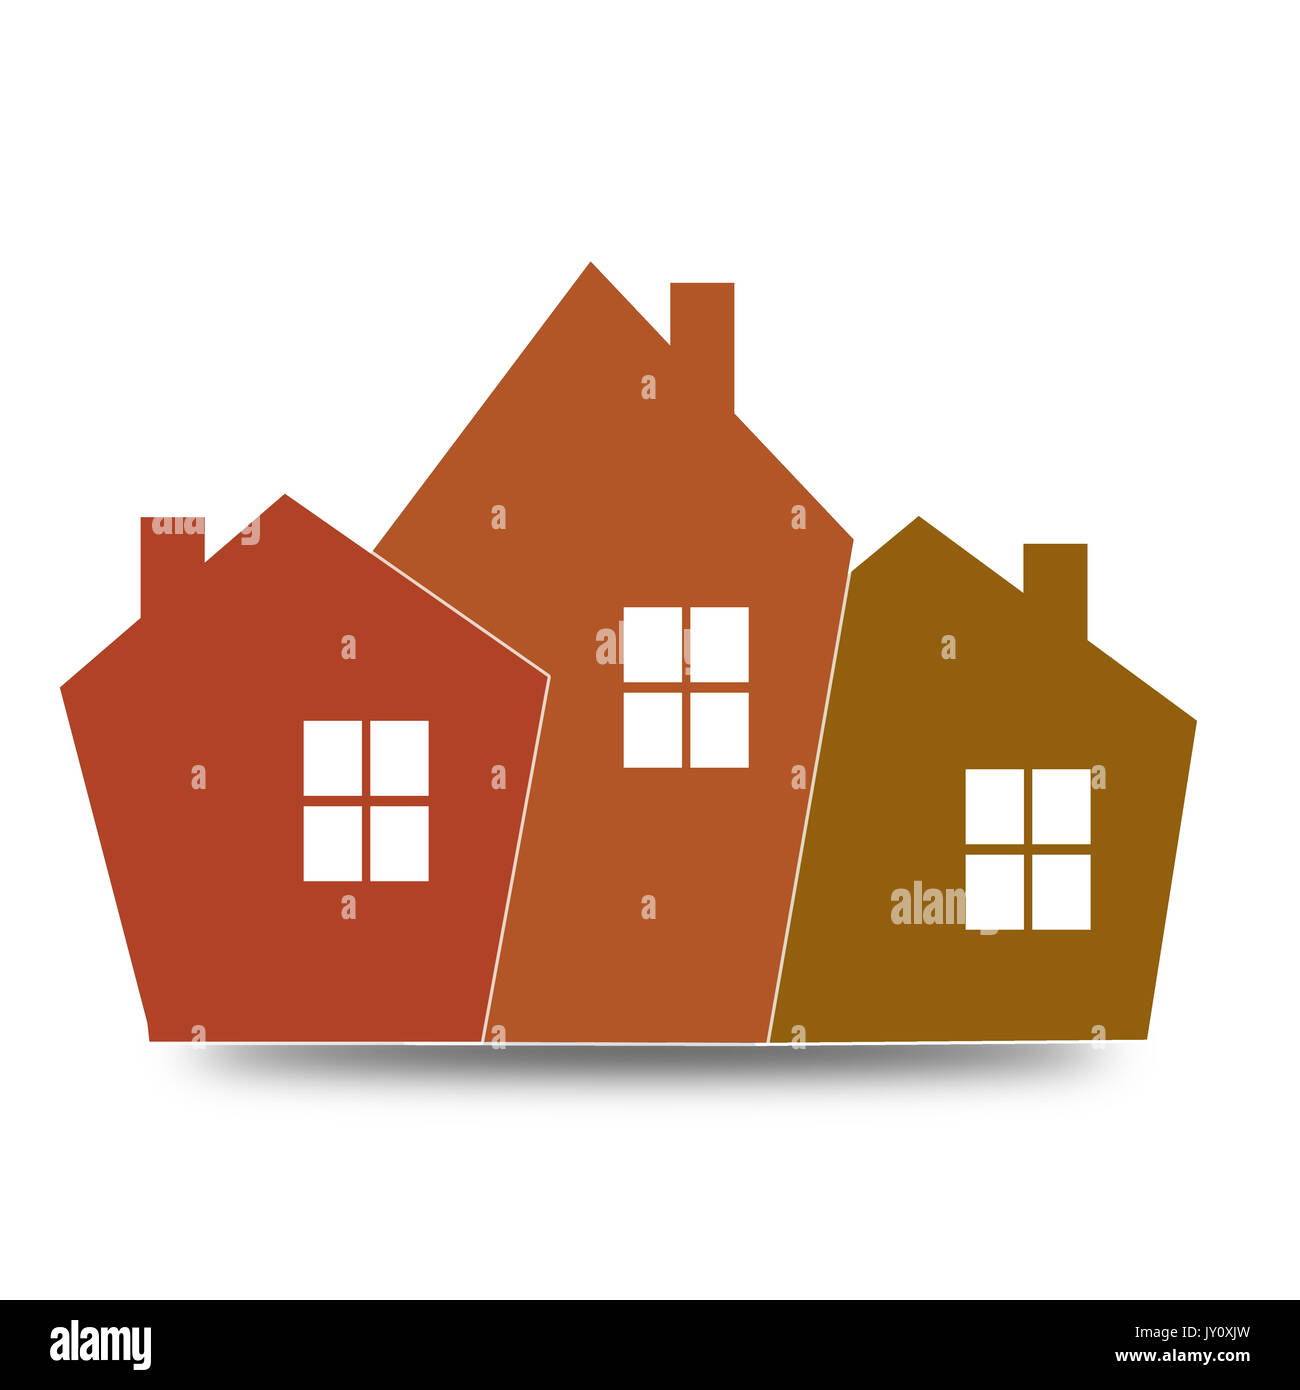 orange house icon image with hi res rendered artwork that could be